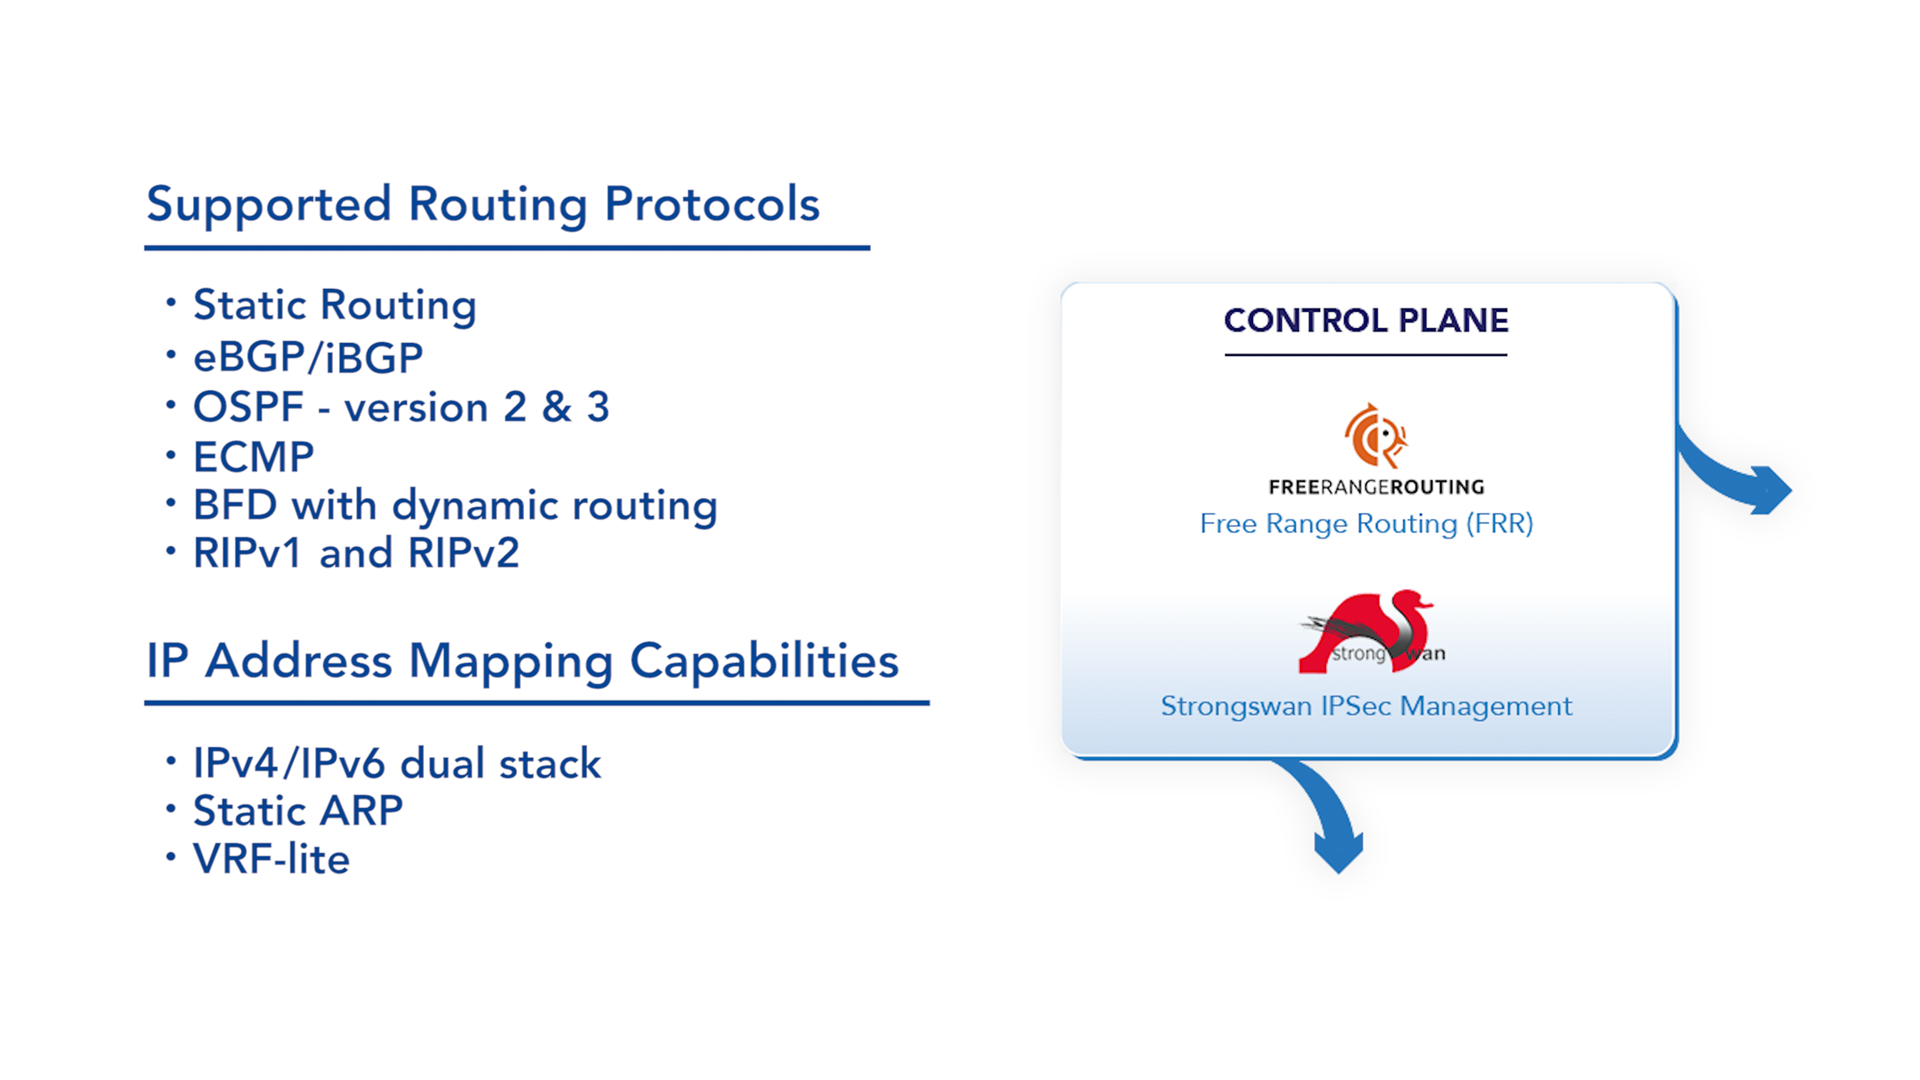 Web page Supported Routing Protocols